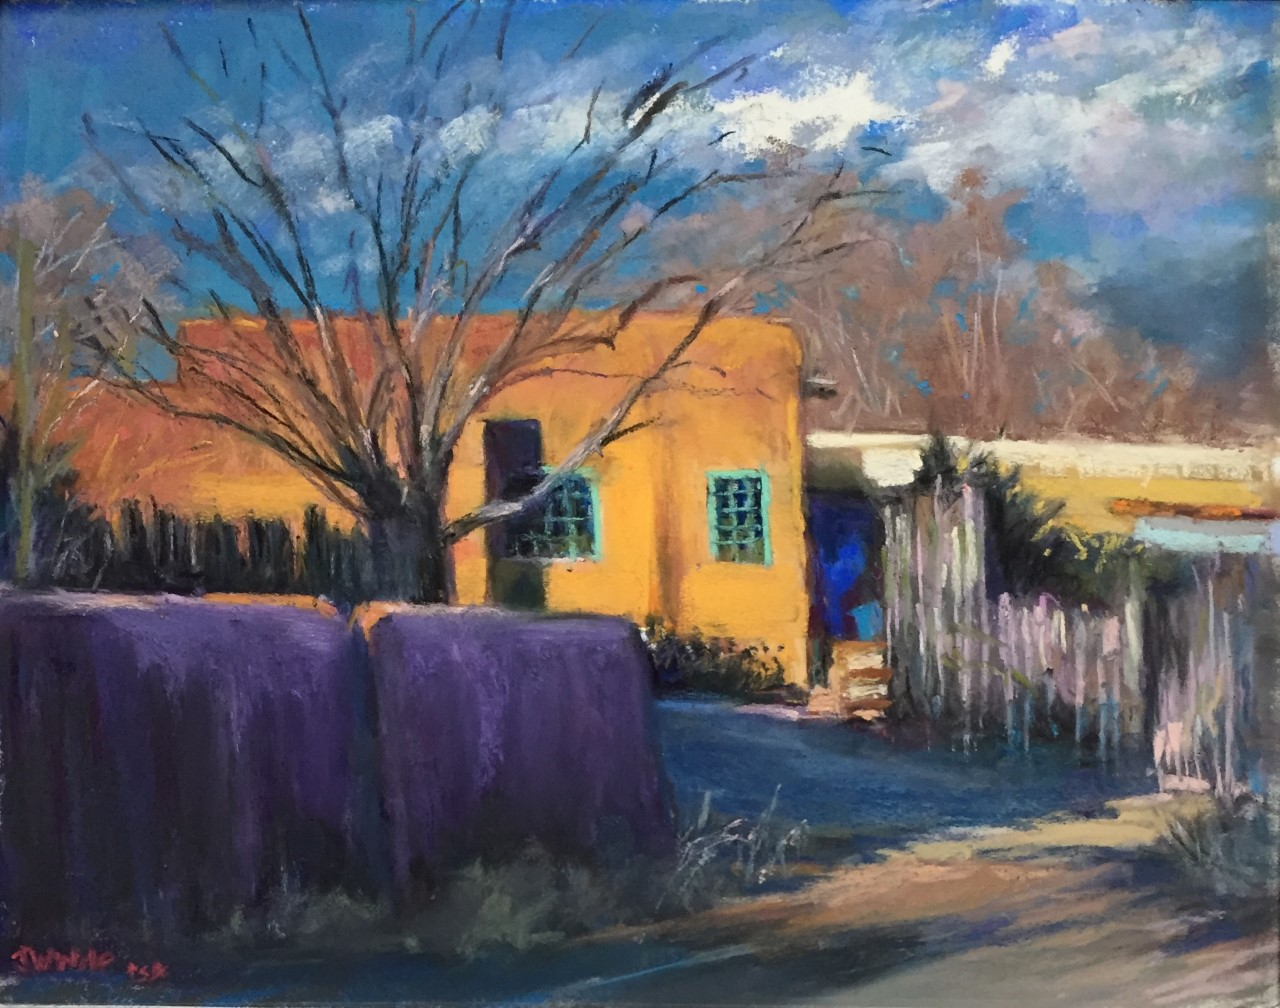 Jane Wright Wolf - Taos Evening Light